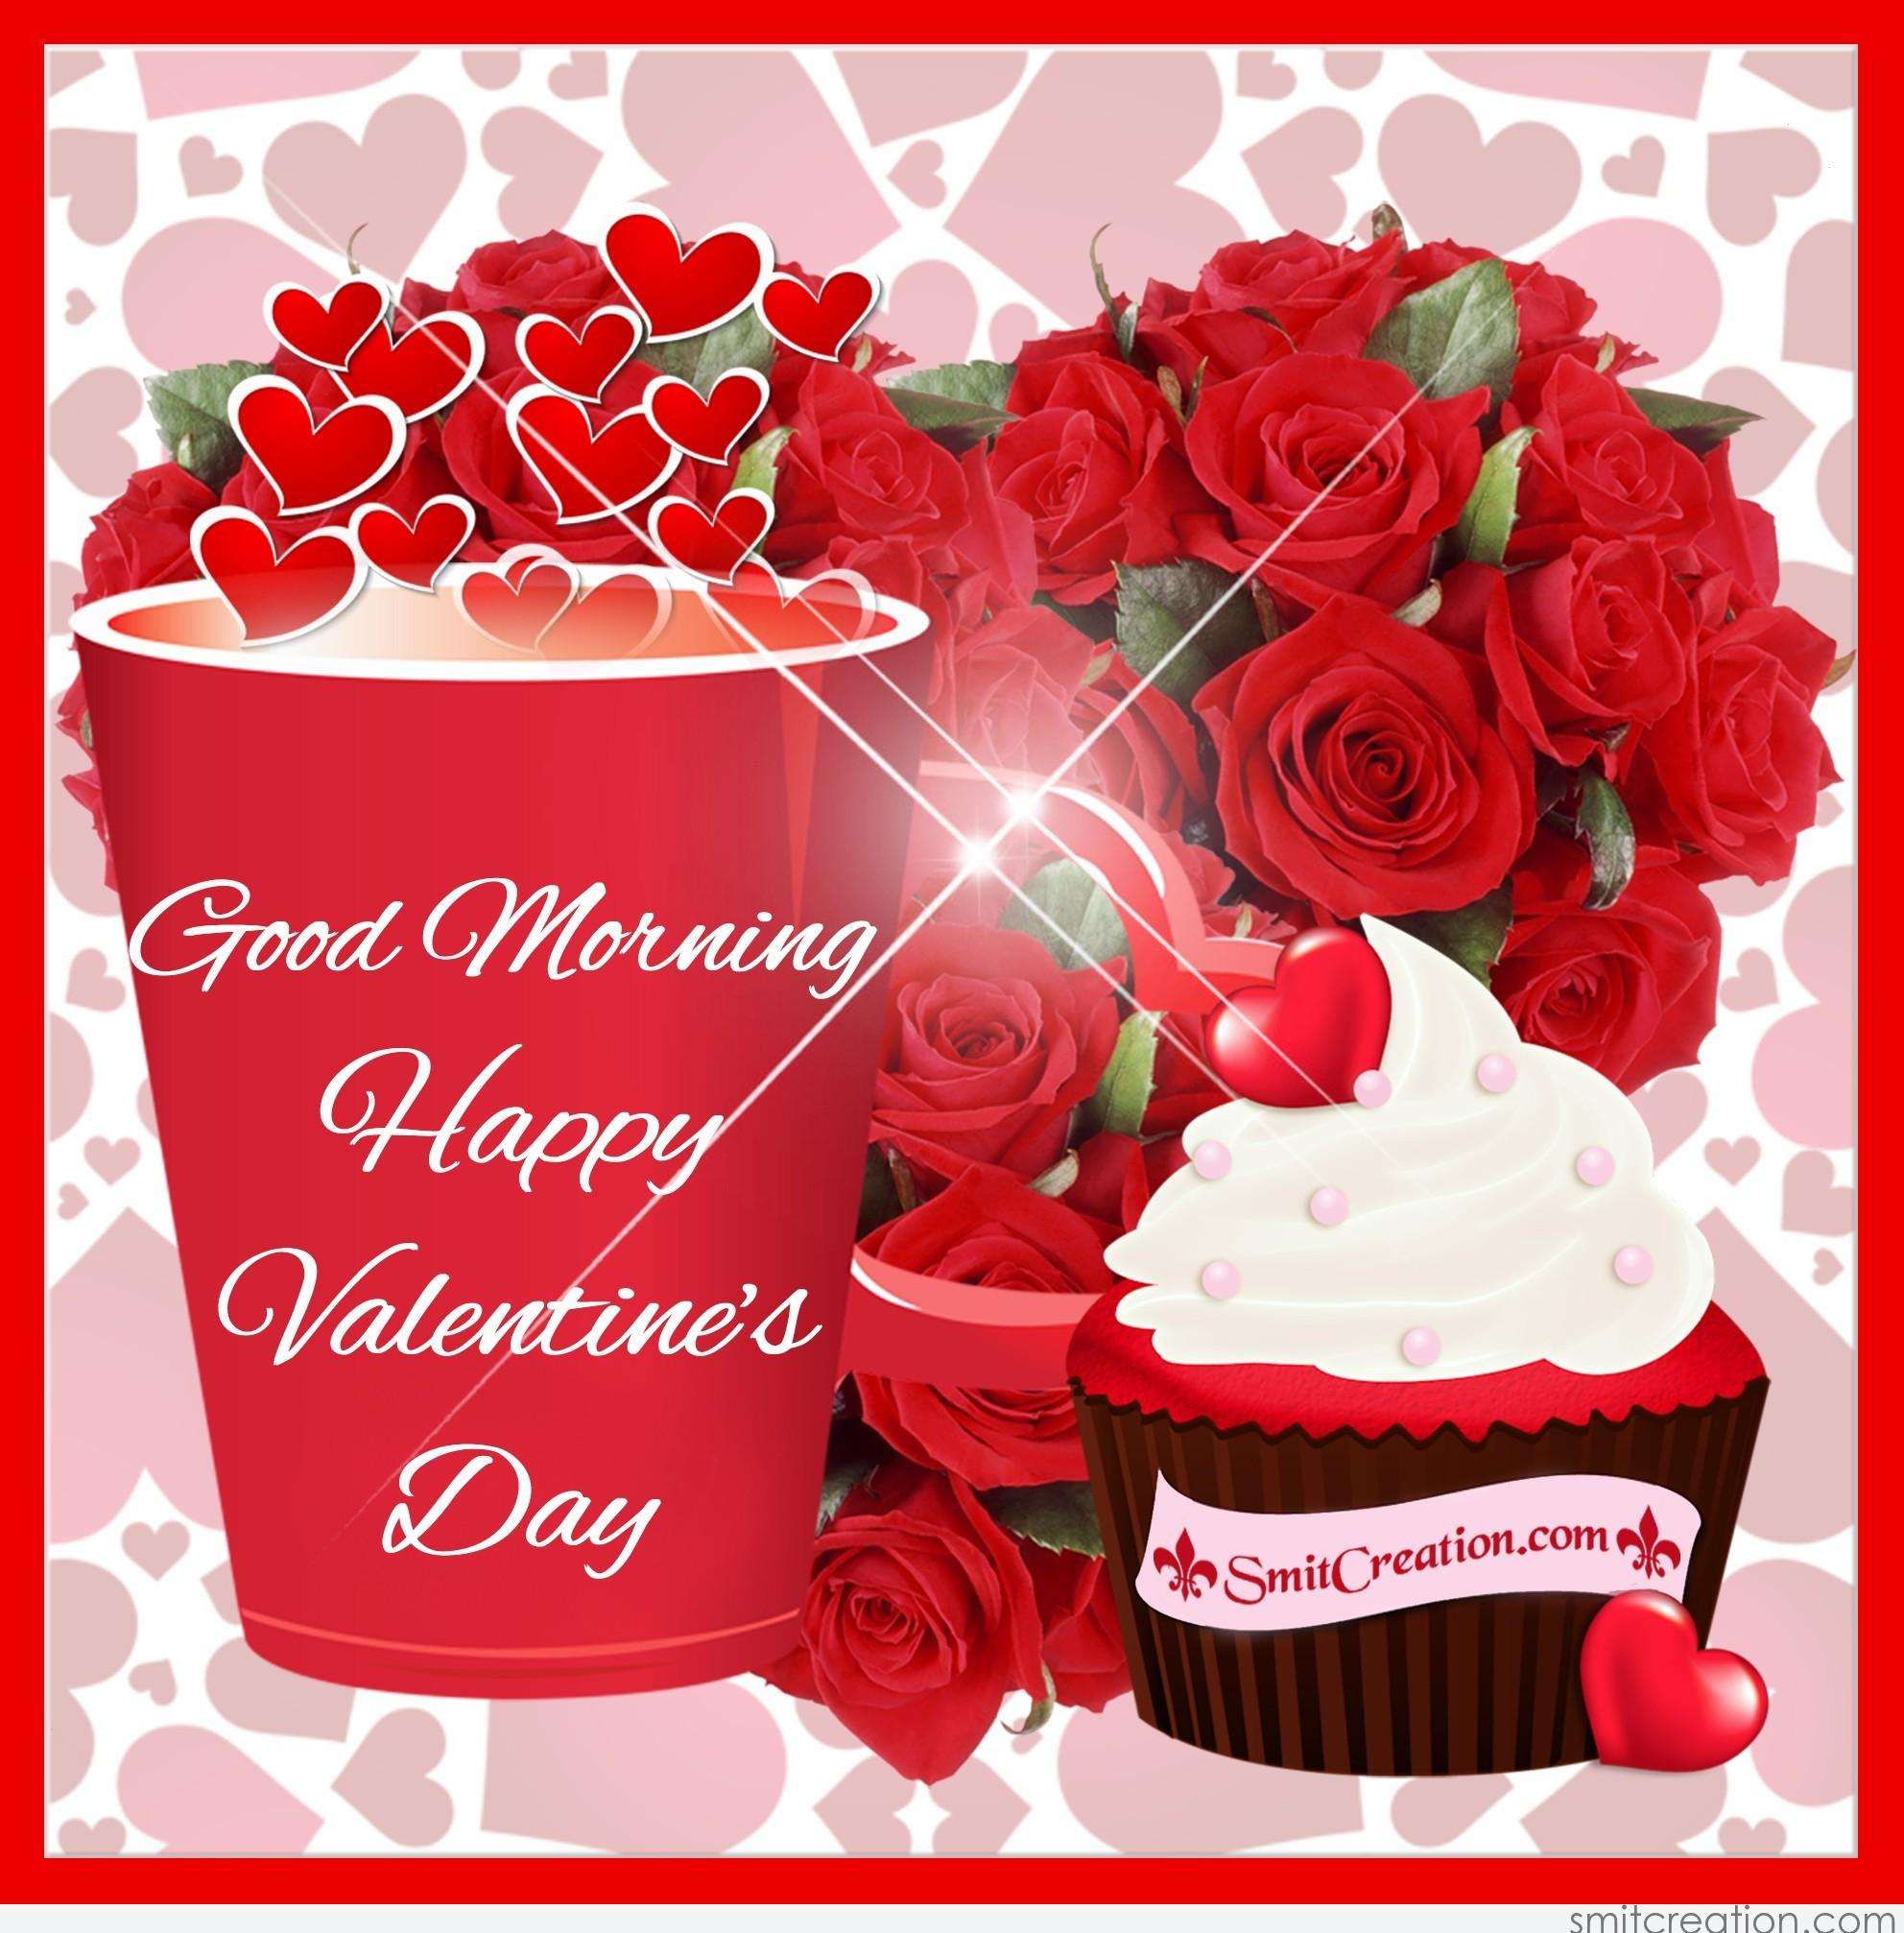 Good Morning Happy Valentines Day Flowers Cup Image-4